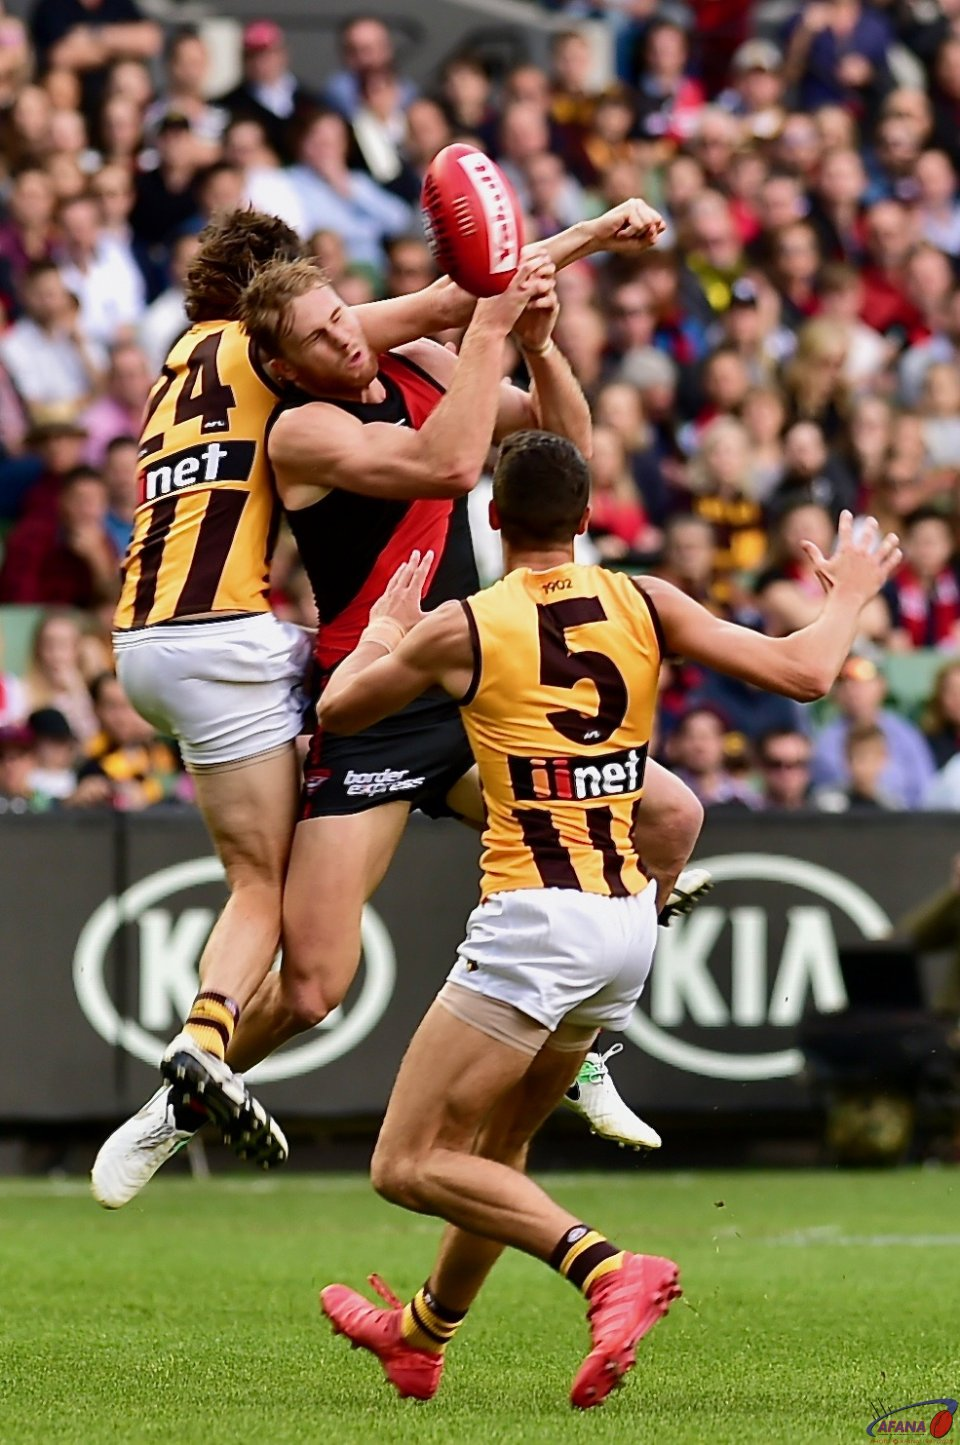 Ben Stratton spoils James Stewarts mark with Ryan Burton (5) in support